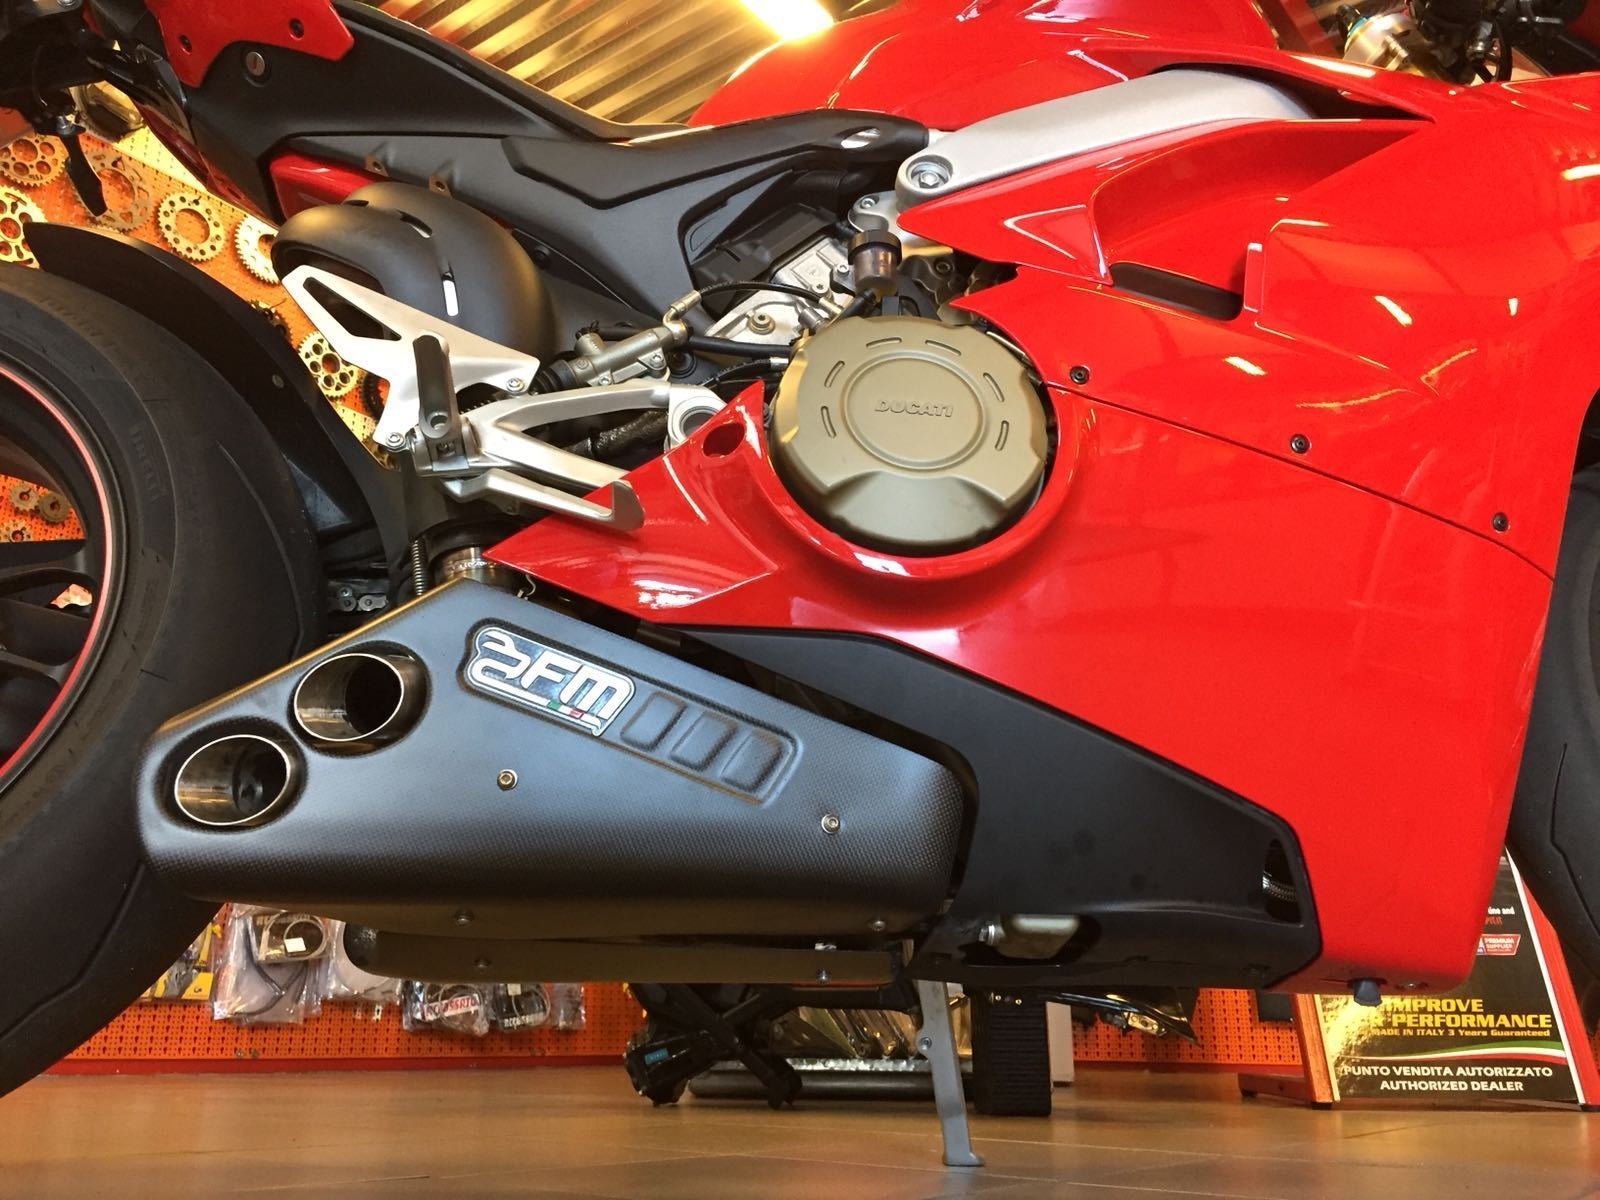 Ducati Panigale V4 FM Exhaust Underbelly Road Slip-On